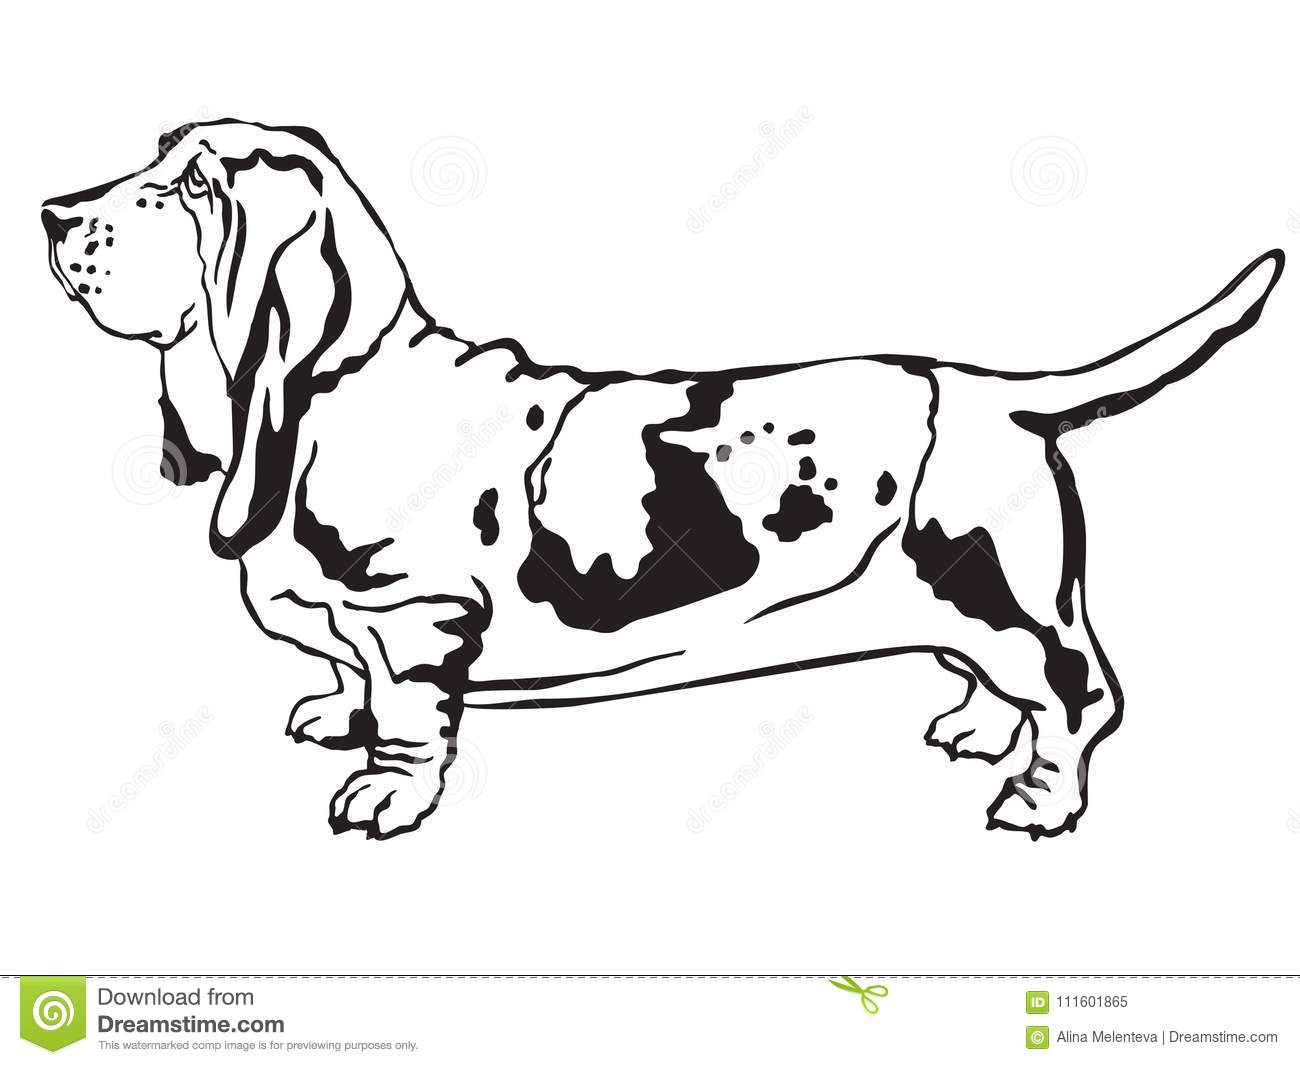 Bassett Hound Coloring Pages  to Print 5r - Save it to your computer